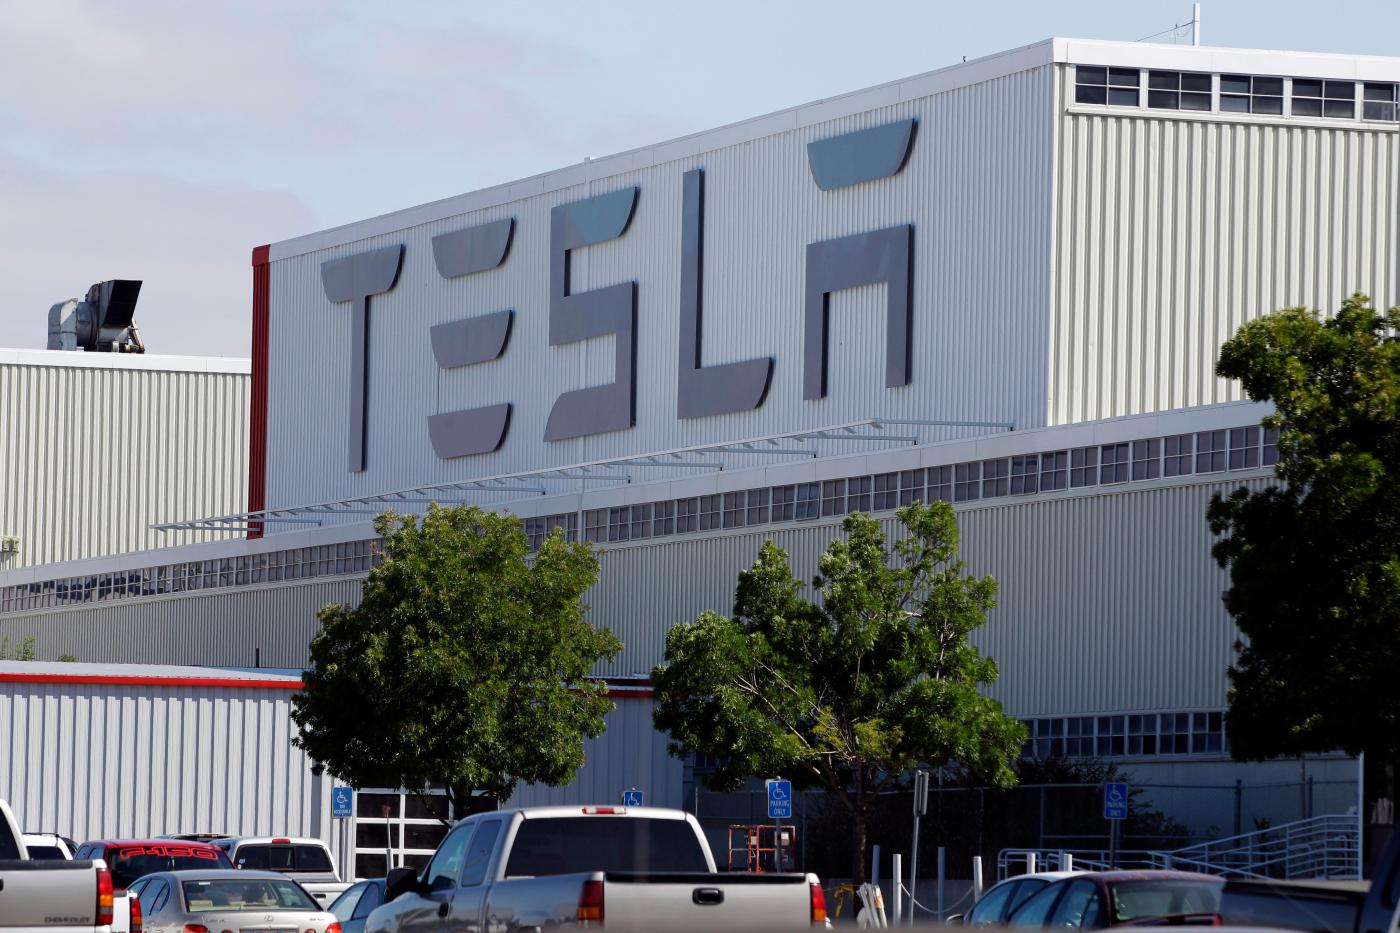 Is Tesla defying county order? With parking lot nearly full, factory looks to be running